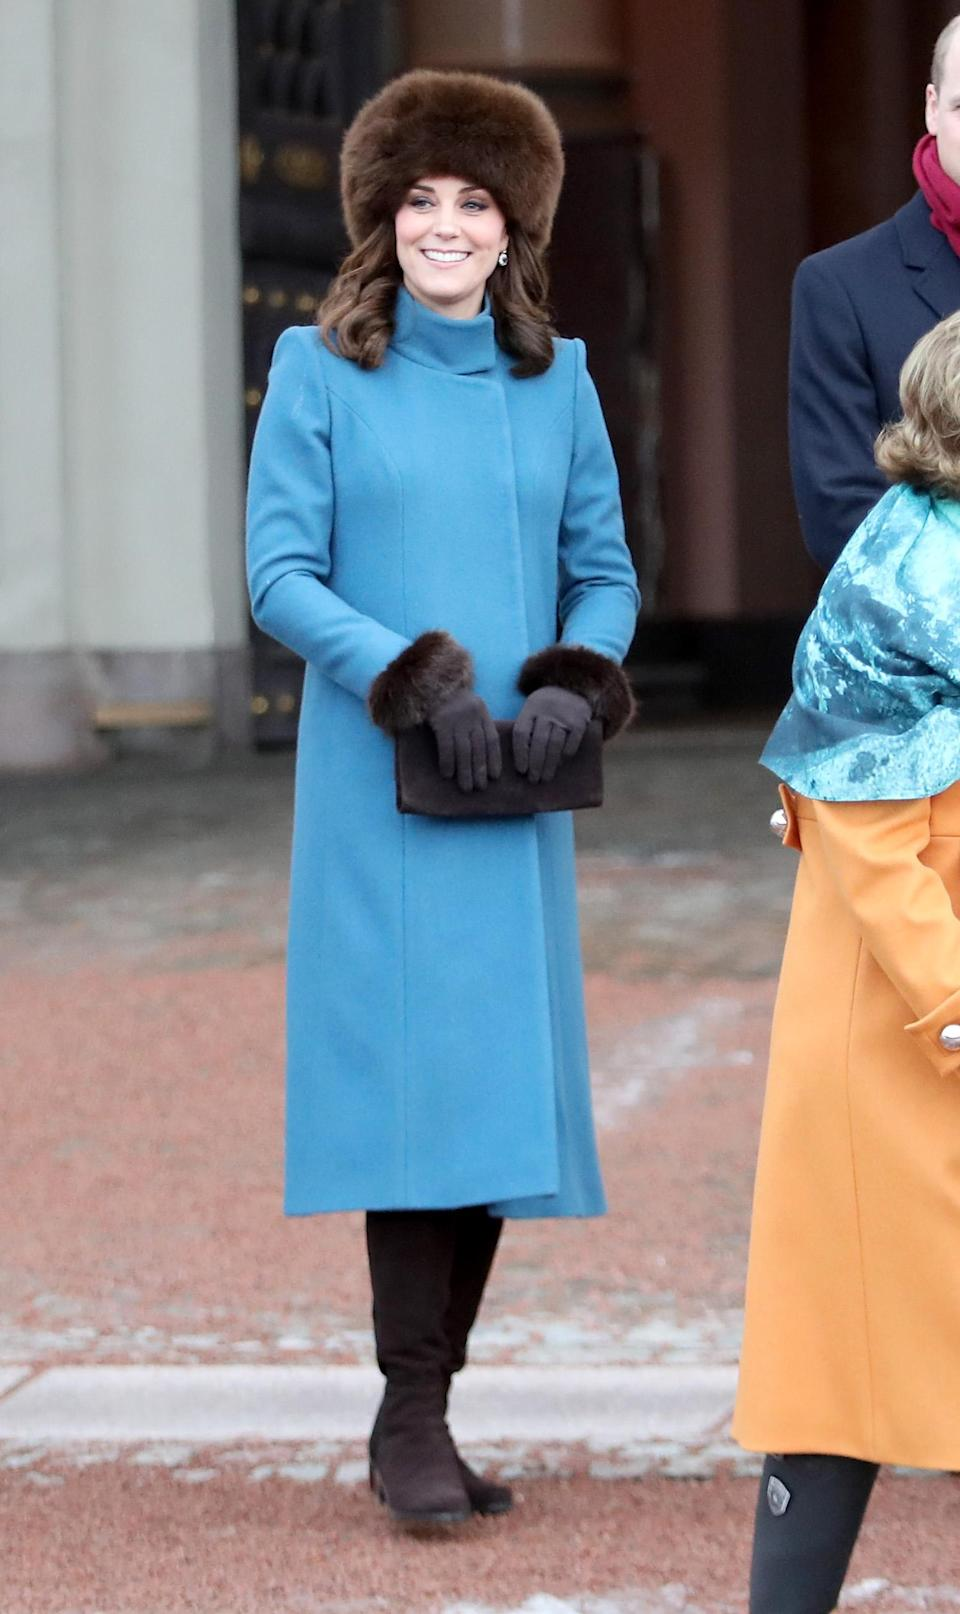 <p><strong>The occassion:</strong> At the Princess Ingrid Alexandra Sculpture Park within the Royal Palace Gardens on day three of the Duke and Duchess's visit to Sweden and Norway.<br><strong>The look:</strong> A sky blue Catherine Walker coat with a fur hat. <br>[Photo: Getty] </p>